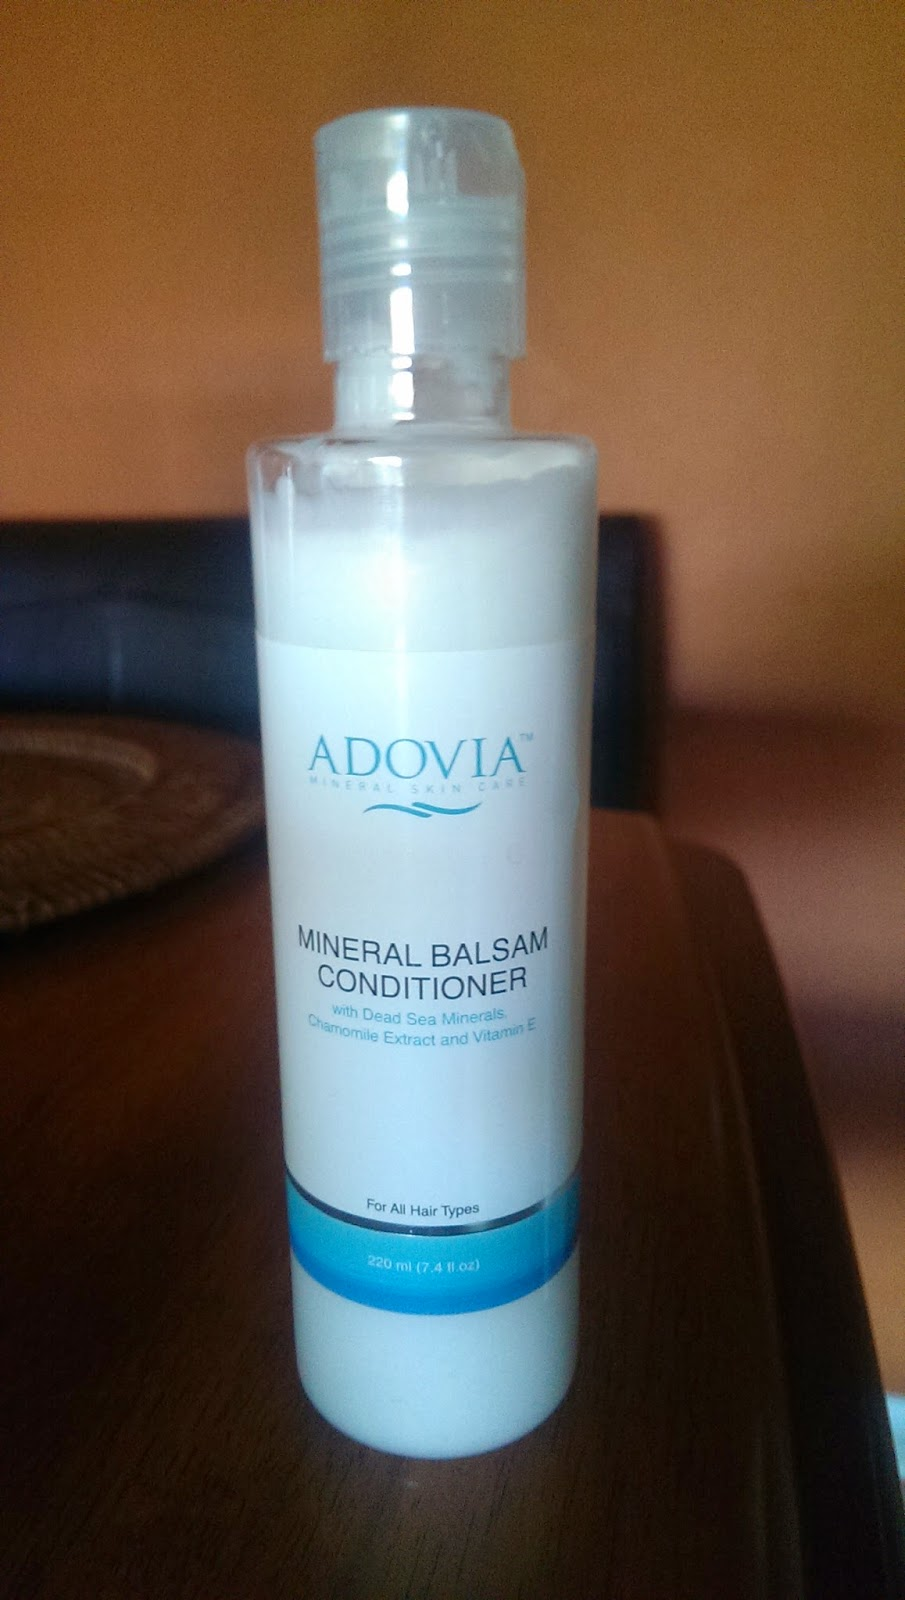 Dead+Sea+Hair+Conditioner Adovia Mineral Balsam Review #hairconditioner Sea Salt Conditioner